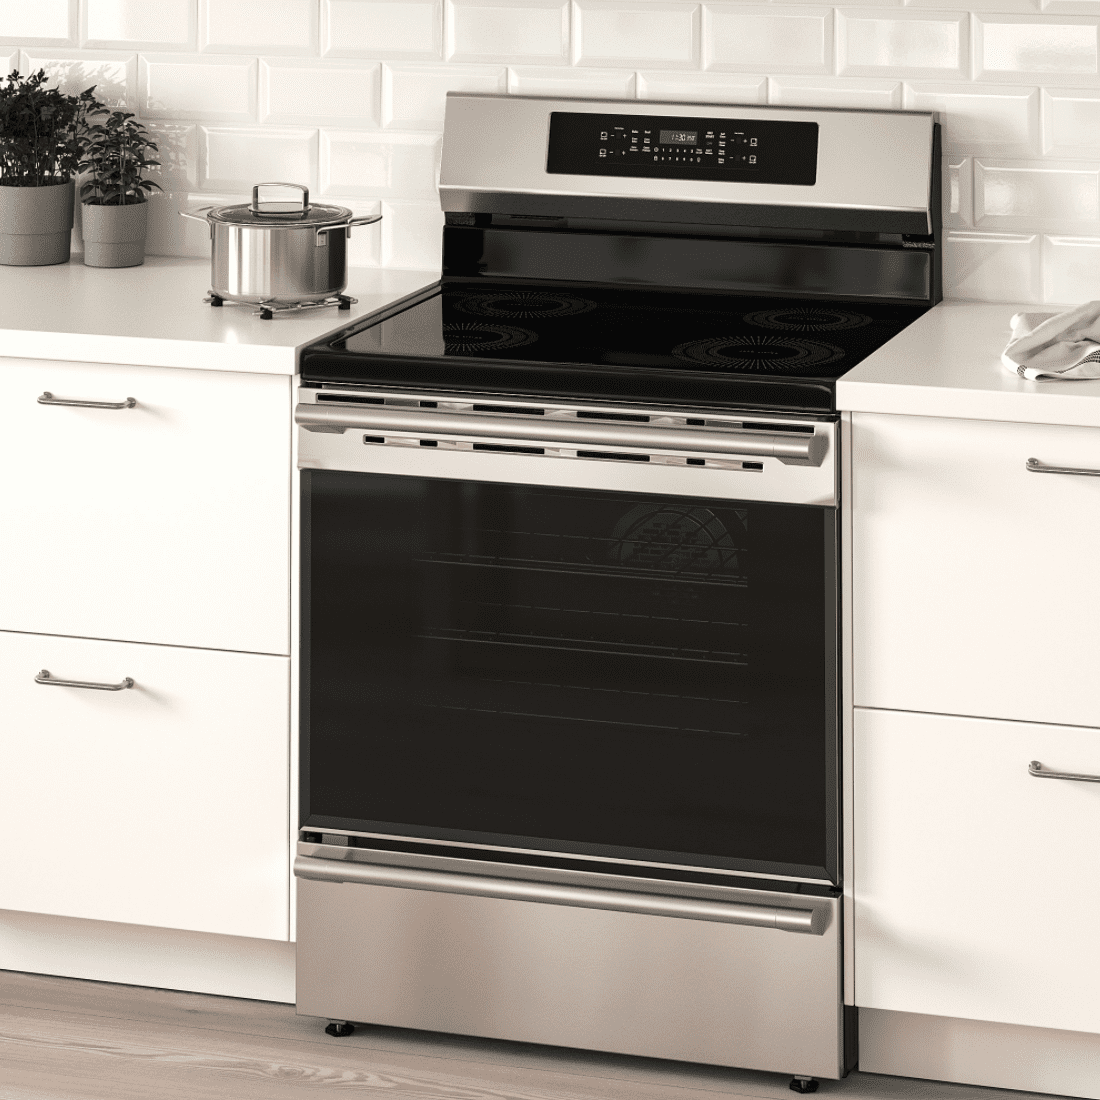 An induction range you can buy at IKEA